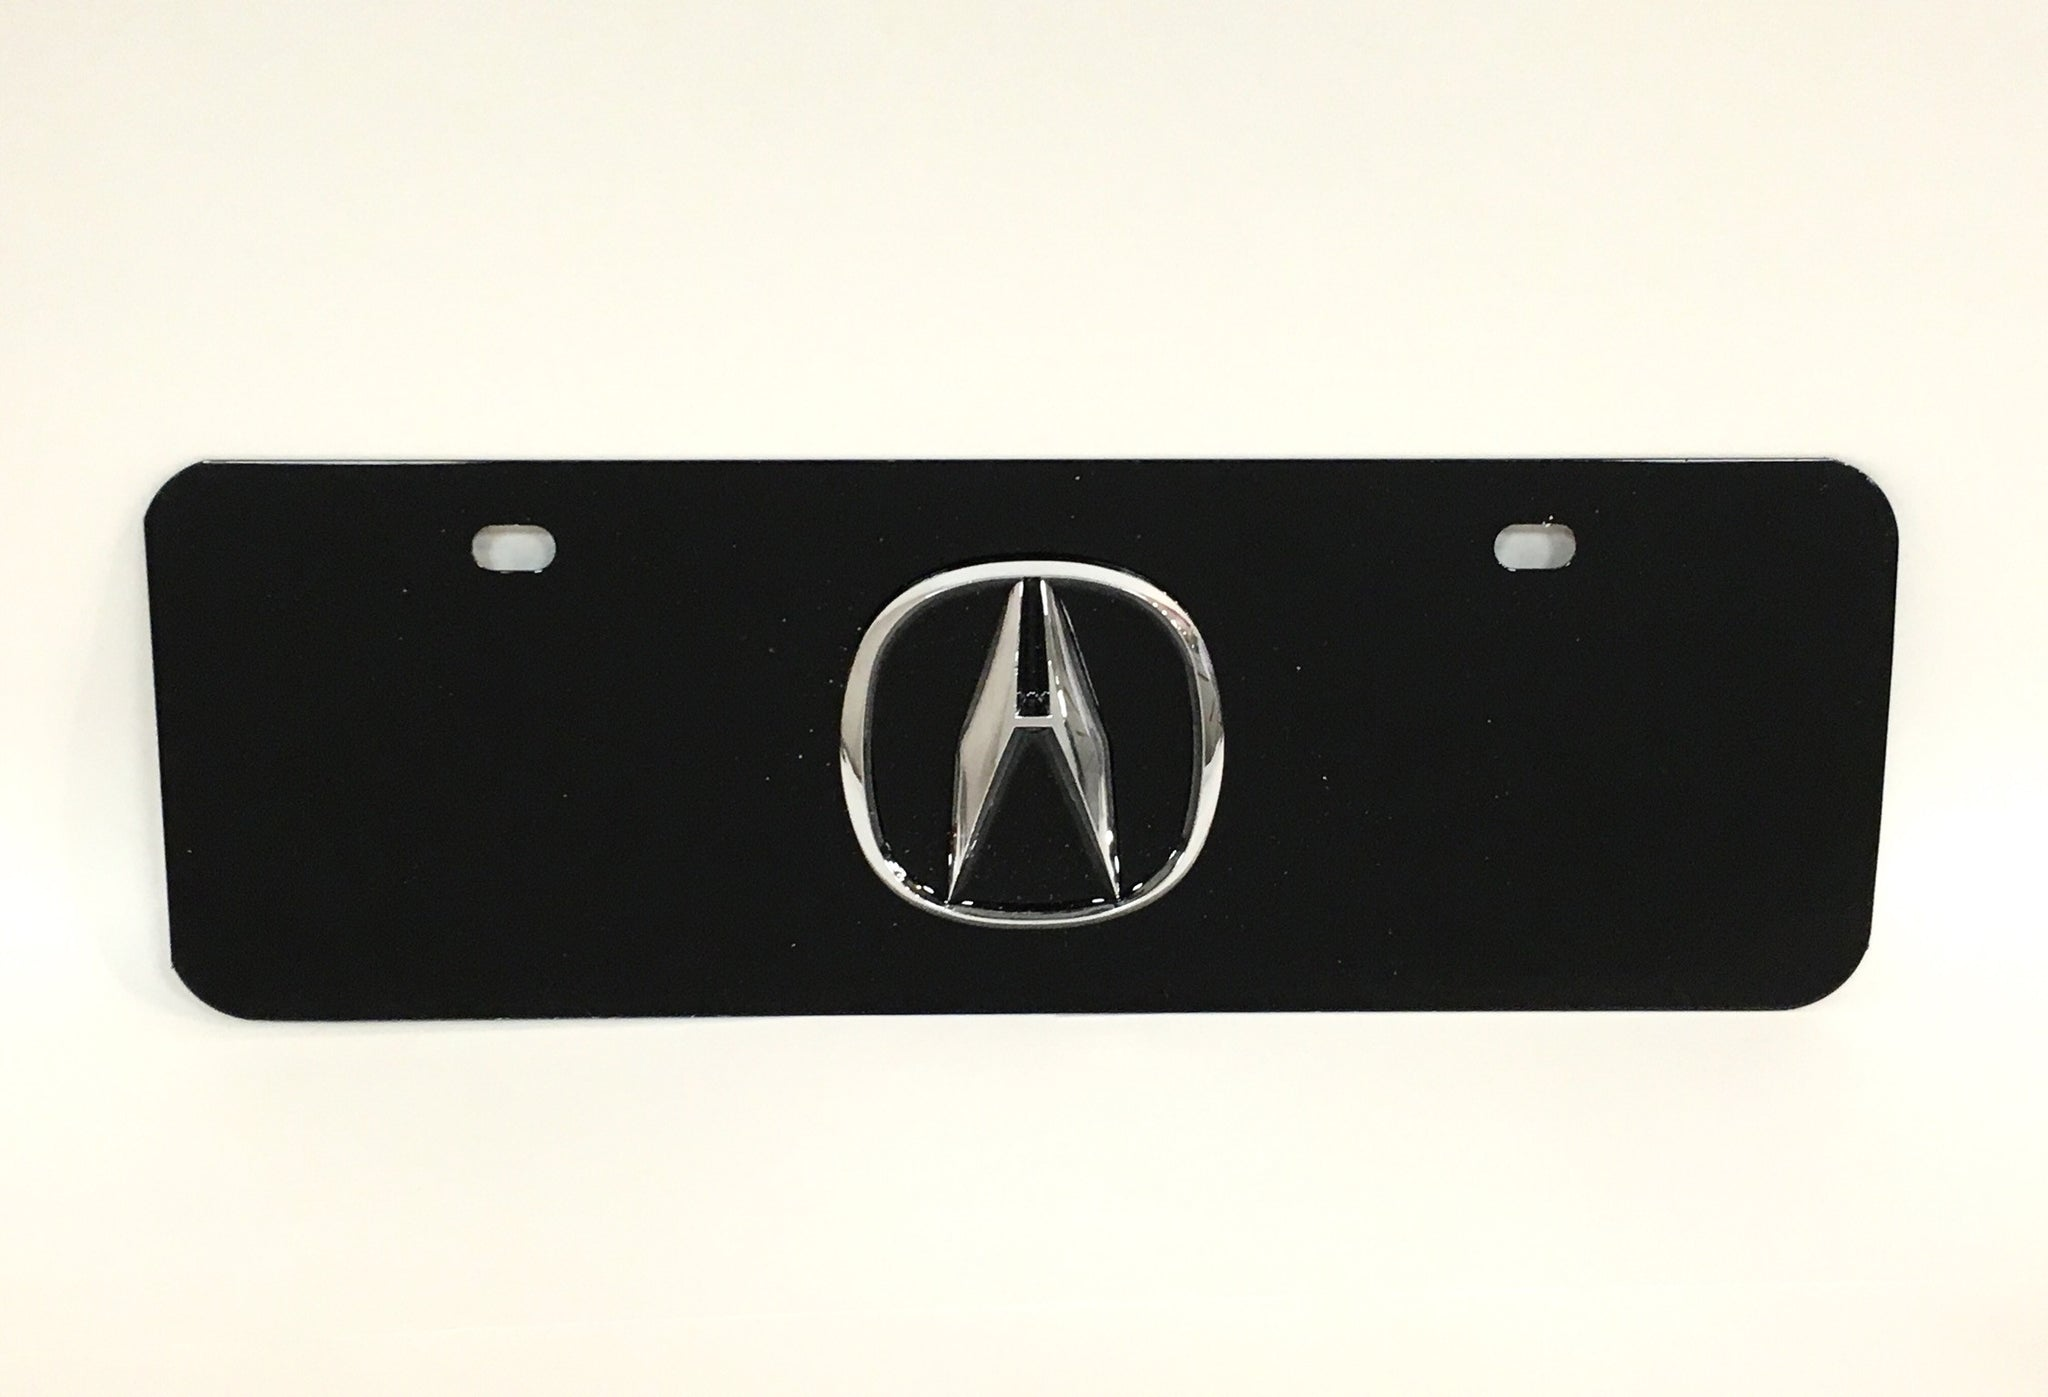 Acura Official Emblem Black Stainless Steel HalfSized License Plate - Acura license plate